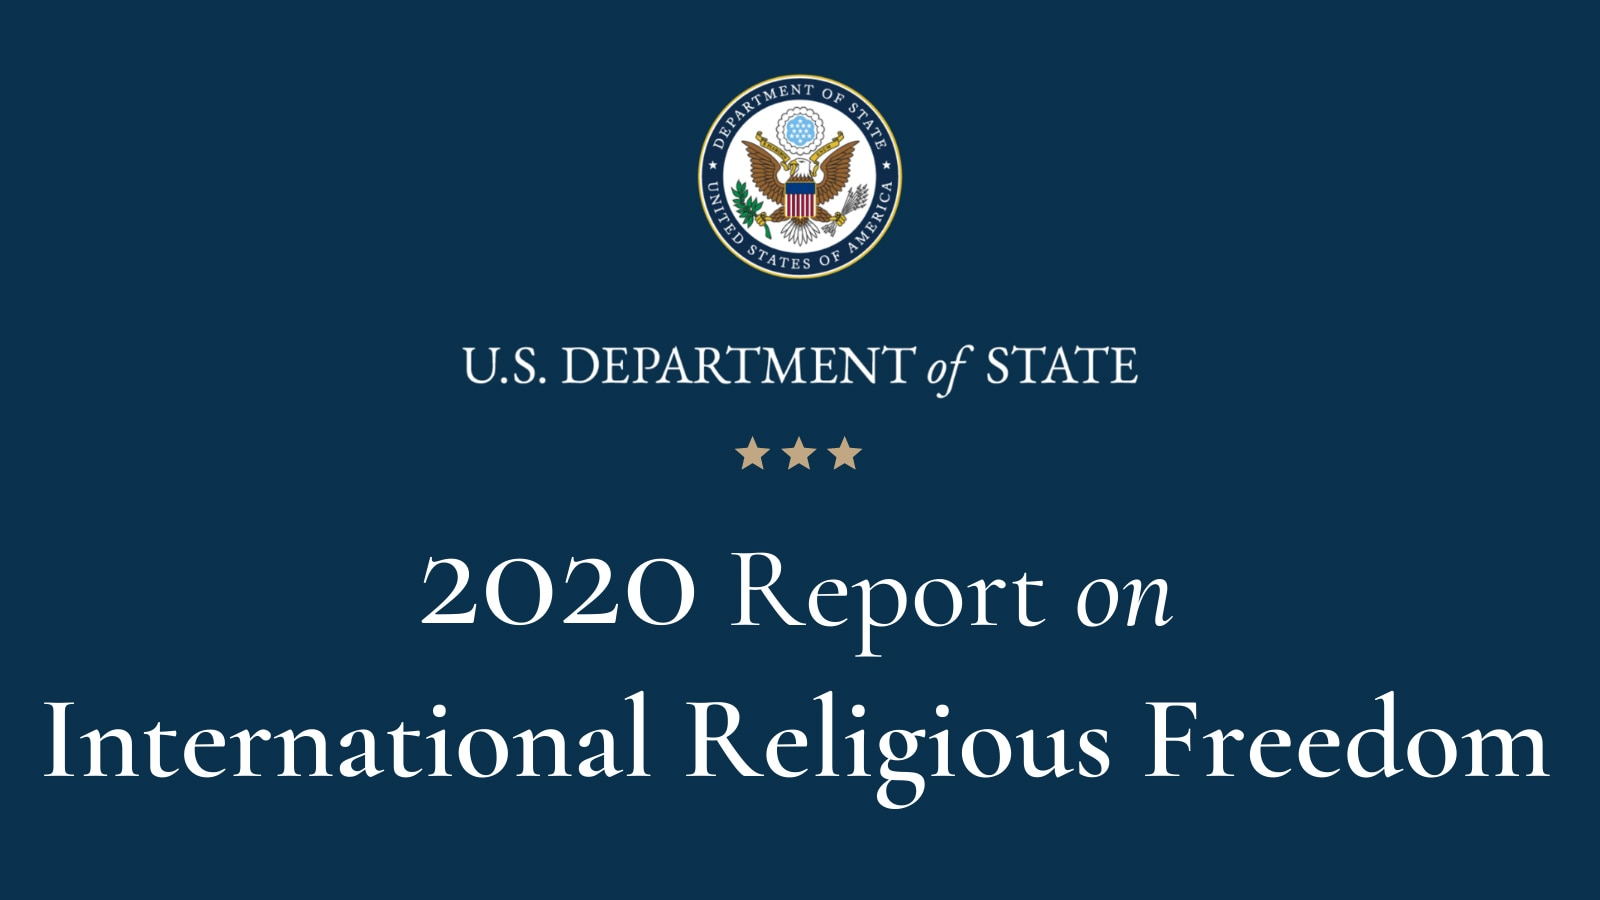 2020 International Religious Freedom Report